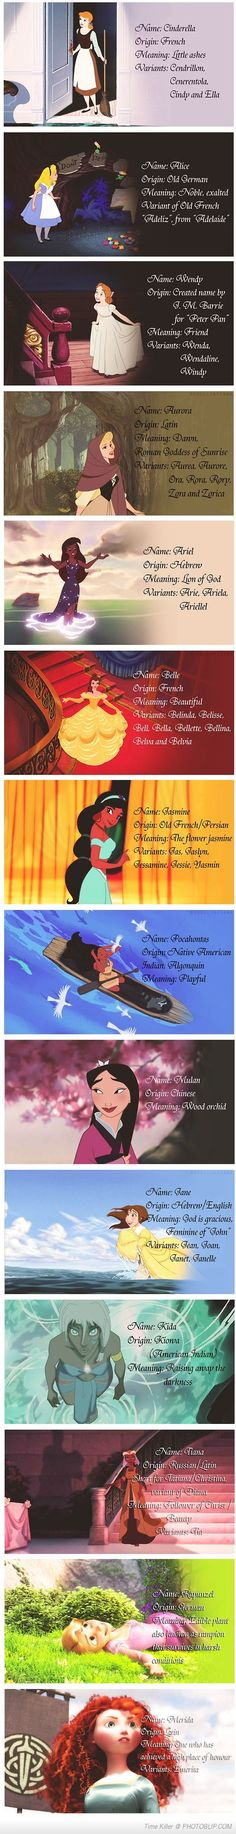 The Meanings Behind The Names Of The Disney Ladies. SO COOL!